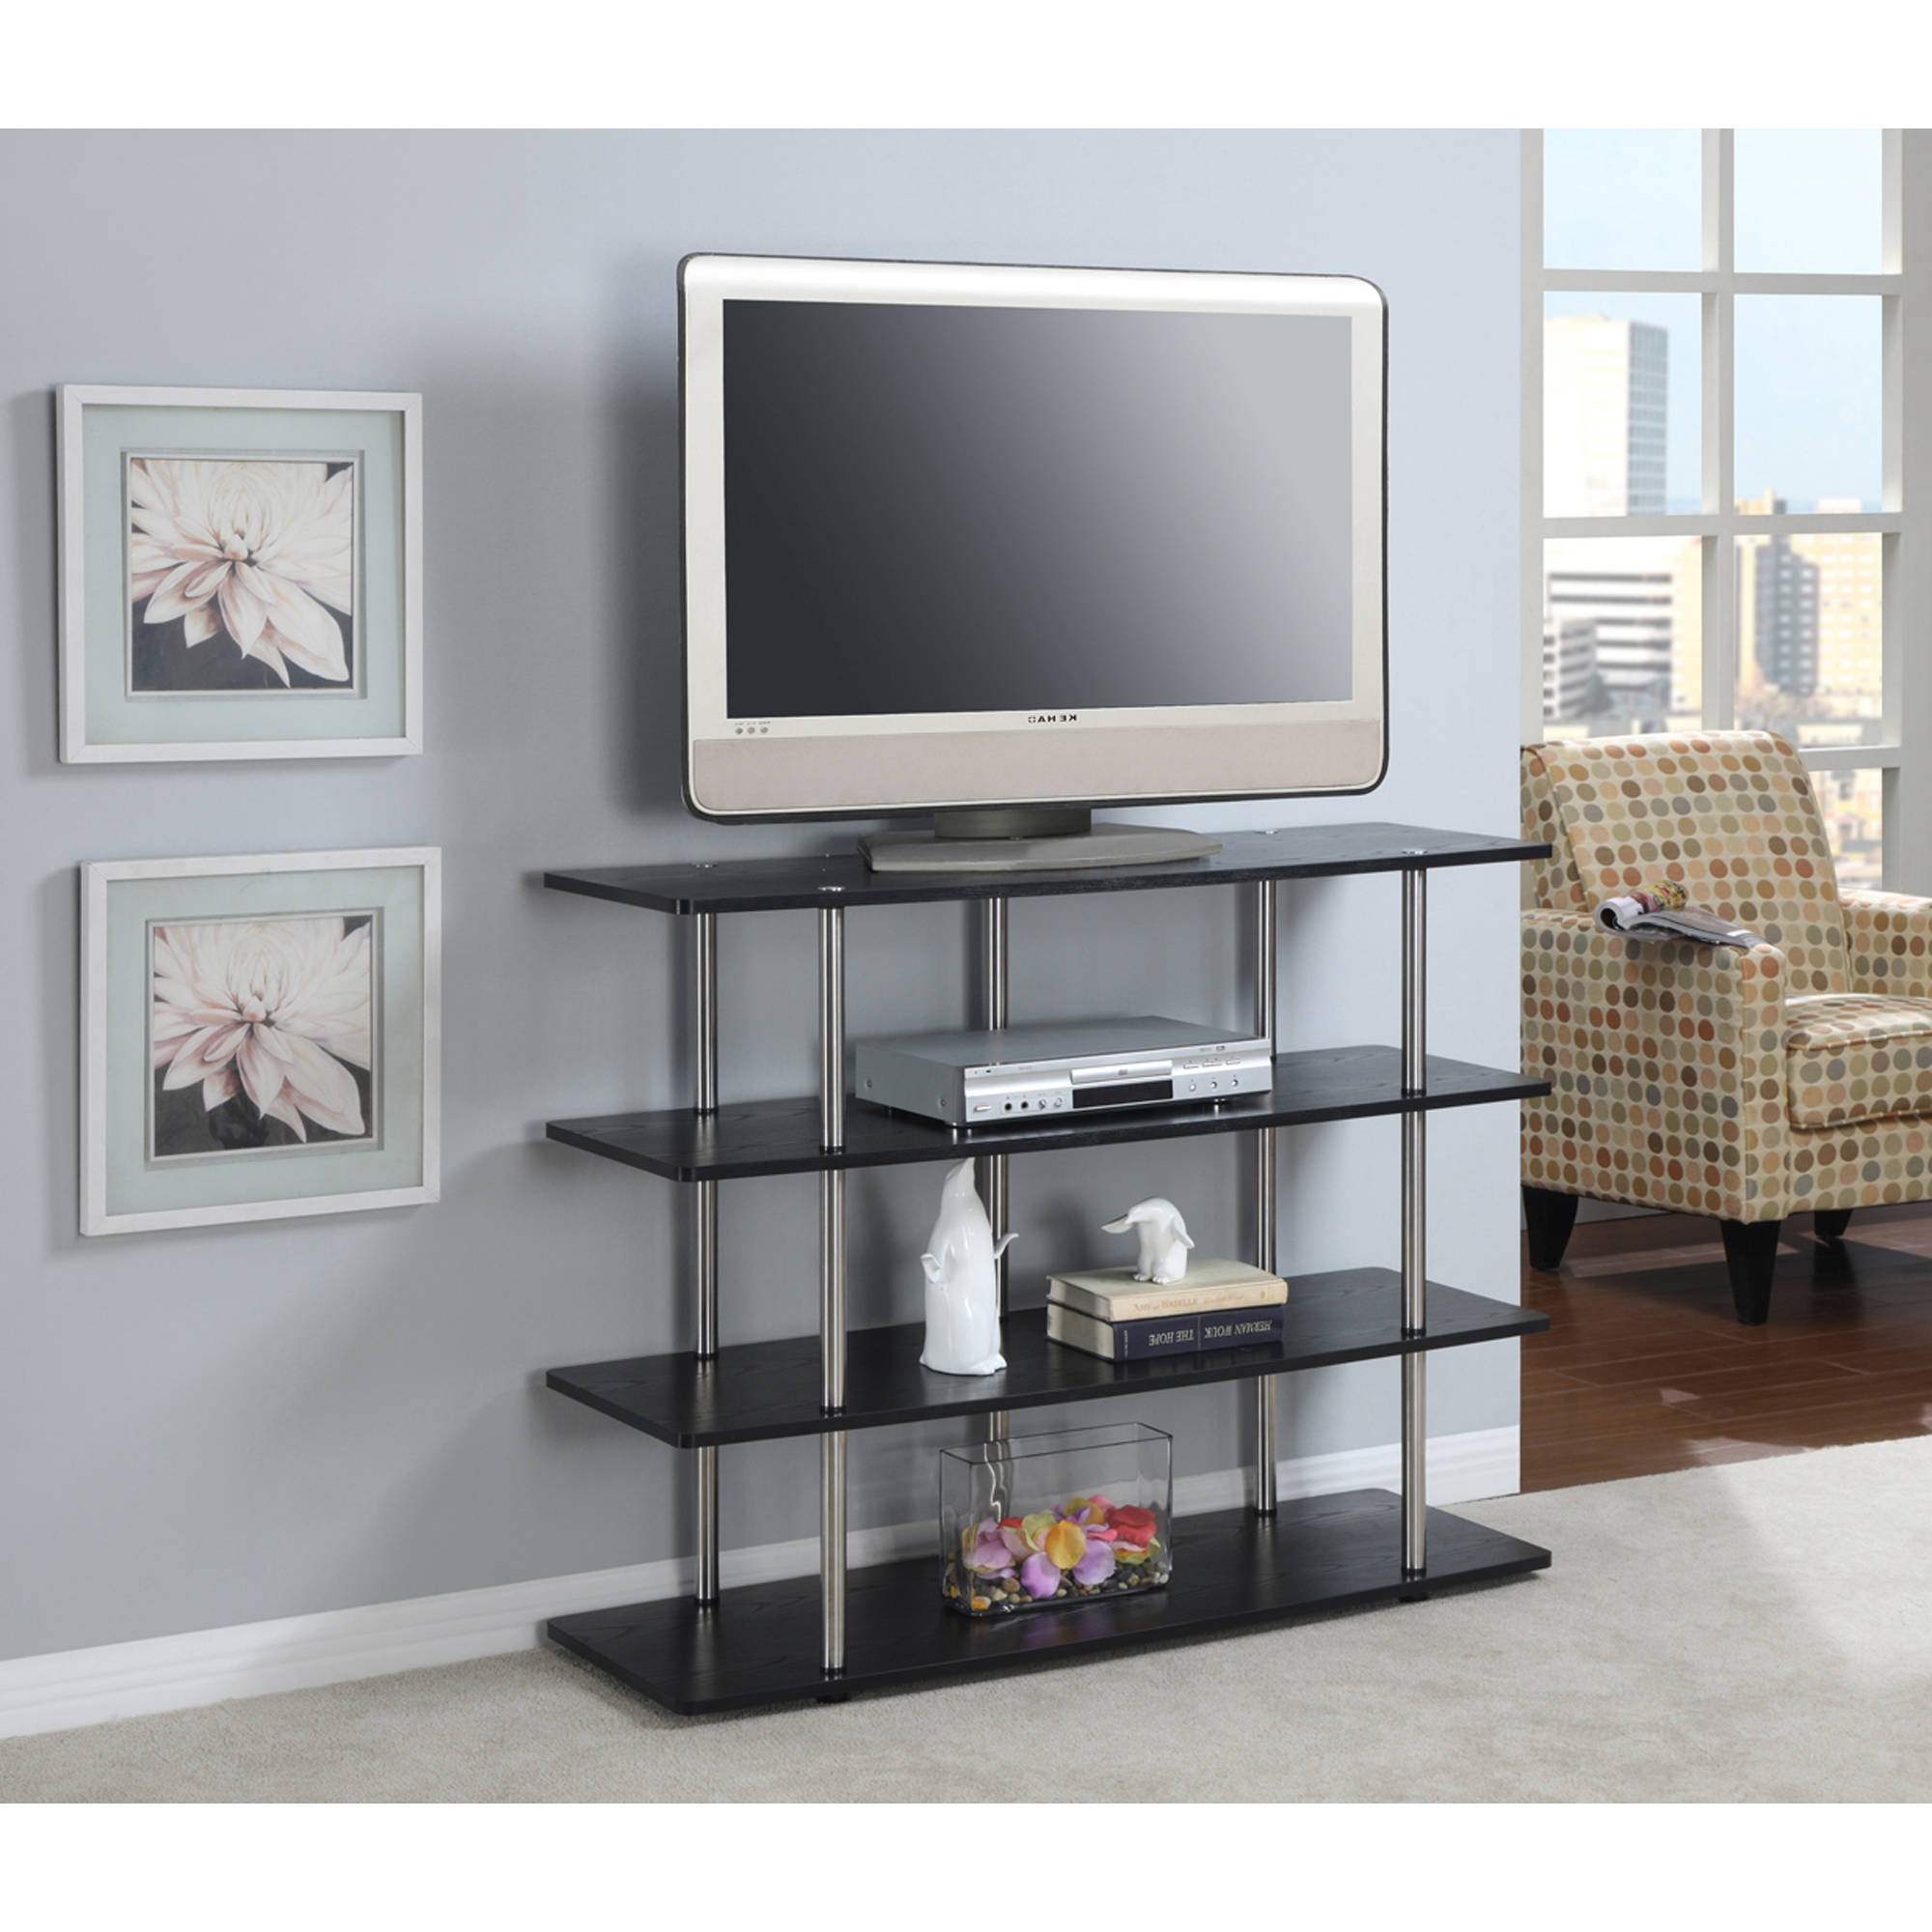 Designs2Go XL High Boy Black TV Stand for TVs up to 42""